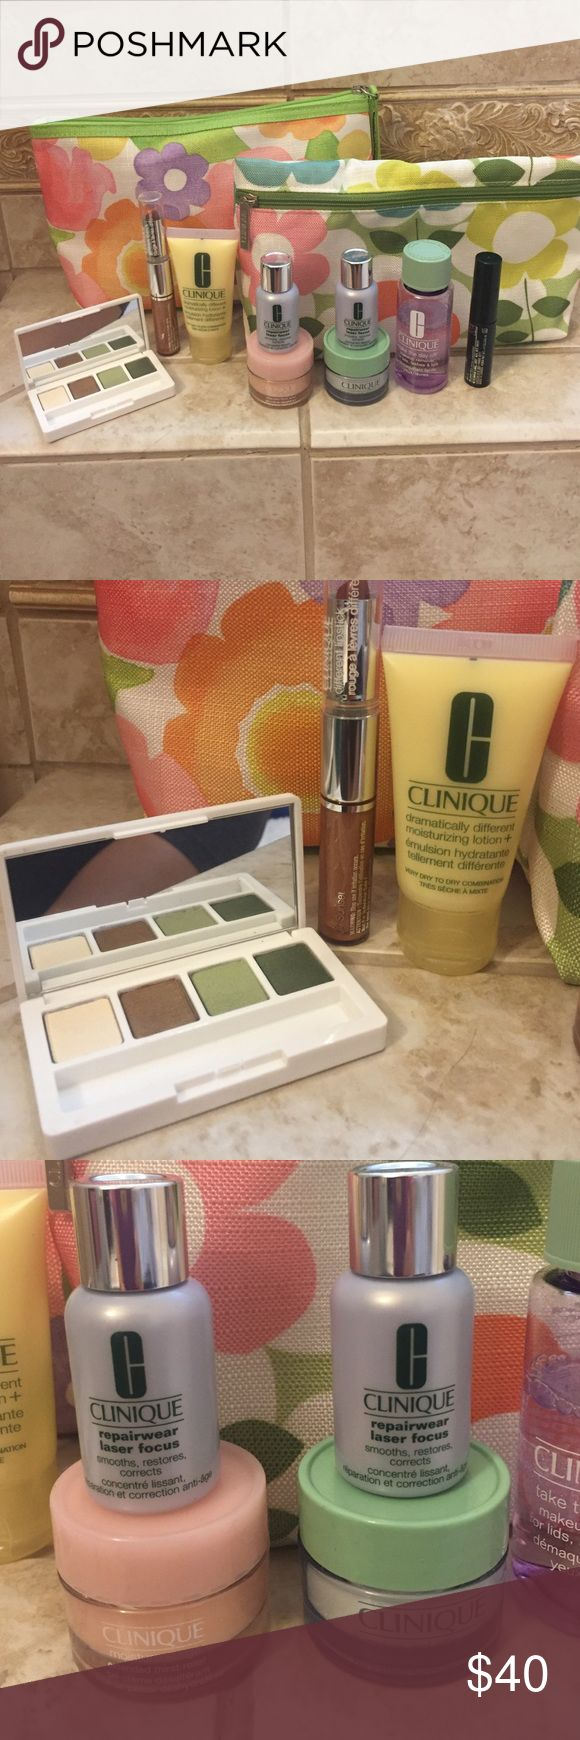 Clinique make up and bags 2 Clinique make up bags with eye shadow palette never used but missing brush, different lipstick and gloss wear, moisturizing lotion, 2 repair wear laser focus, moisture surge, overnight moisturizer, make up remover, and high impact mascara in black Clinique Makeup